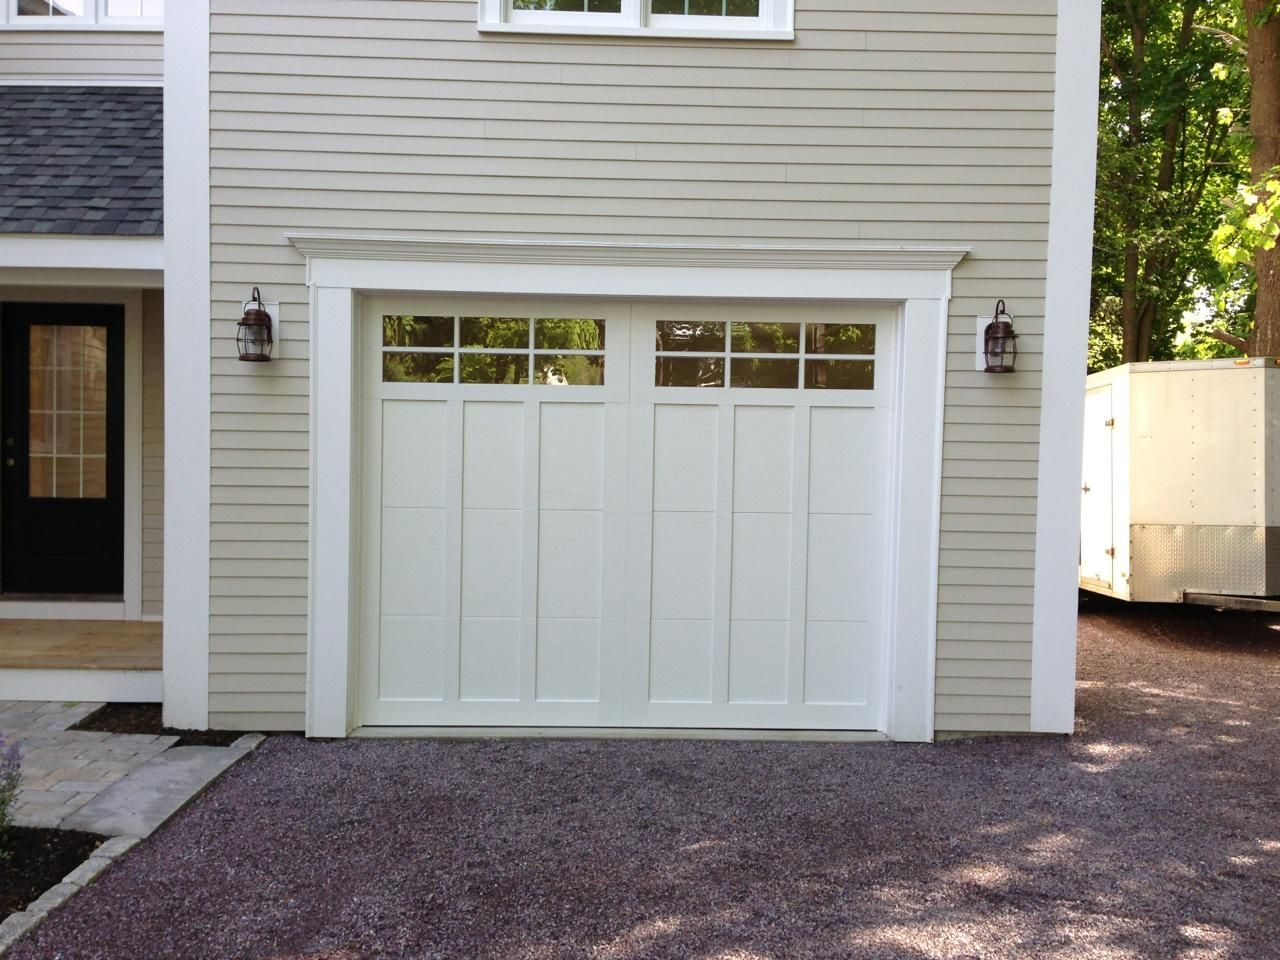 960 #726B3C Carriage House Garage Doors Steel Garage Modern Garage Steel Doors  picture/photo Steel Insulated Exterior Doors 40691280